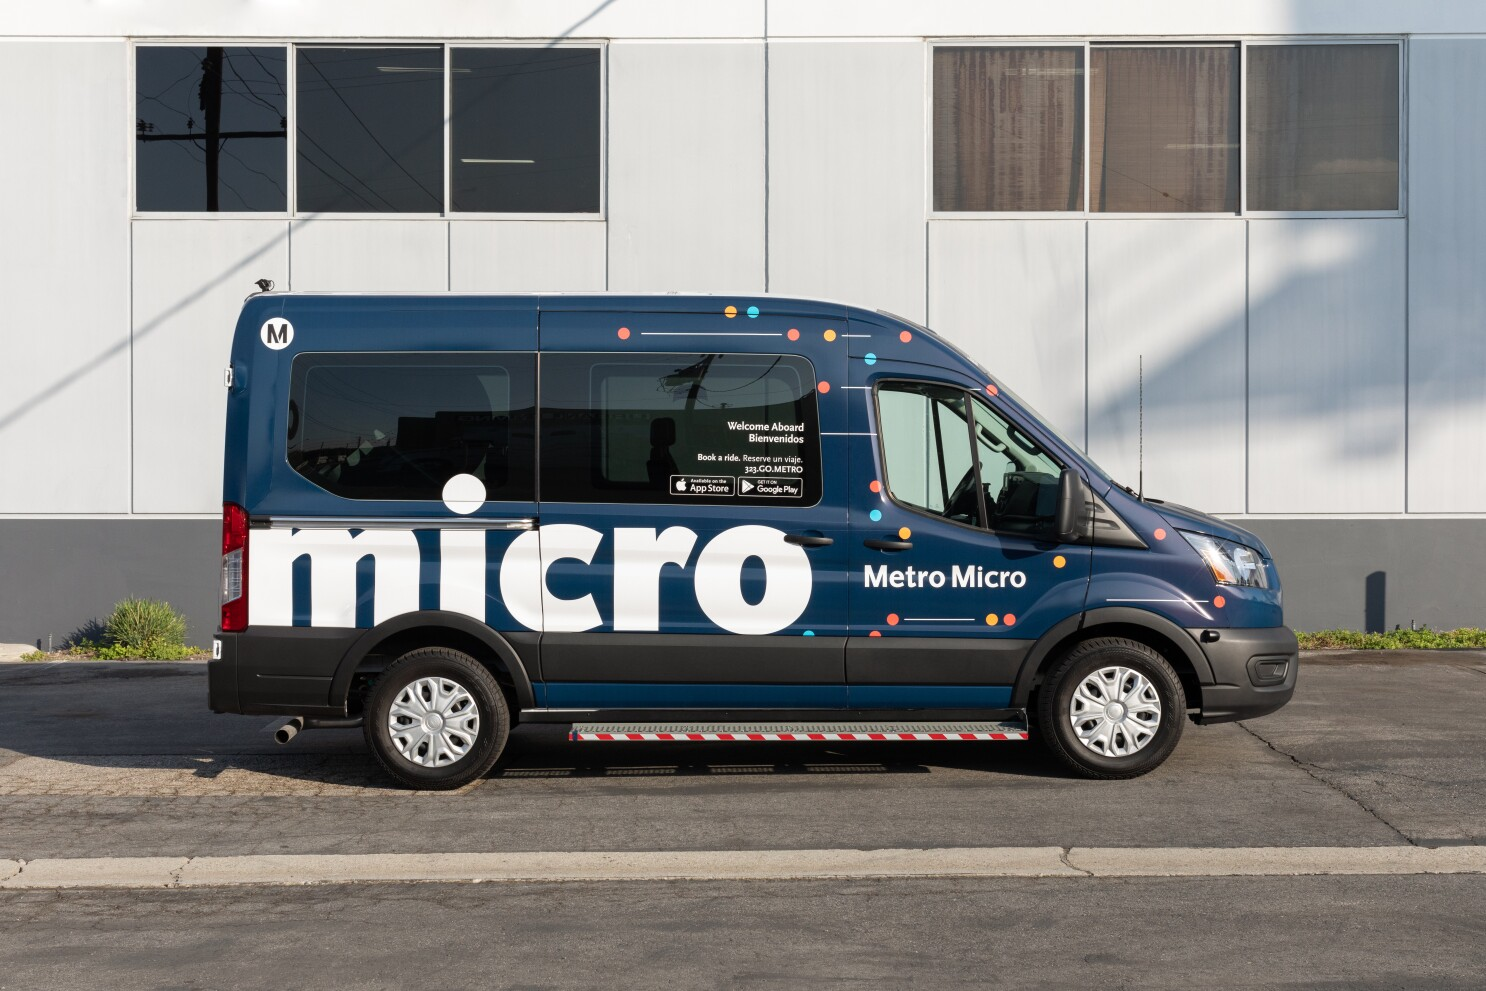 Need a ride Metro Micro offers $20 rideshares around L.A.   Los ...